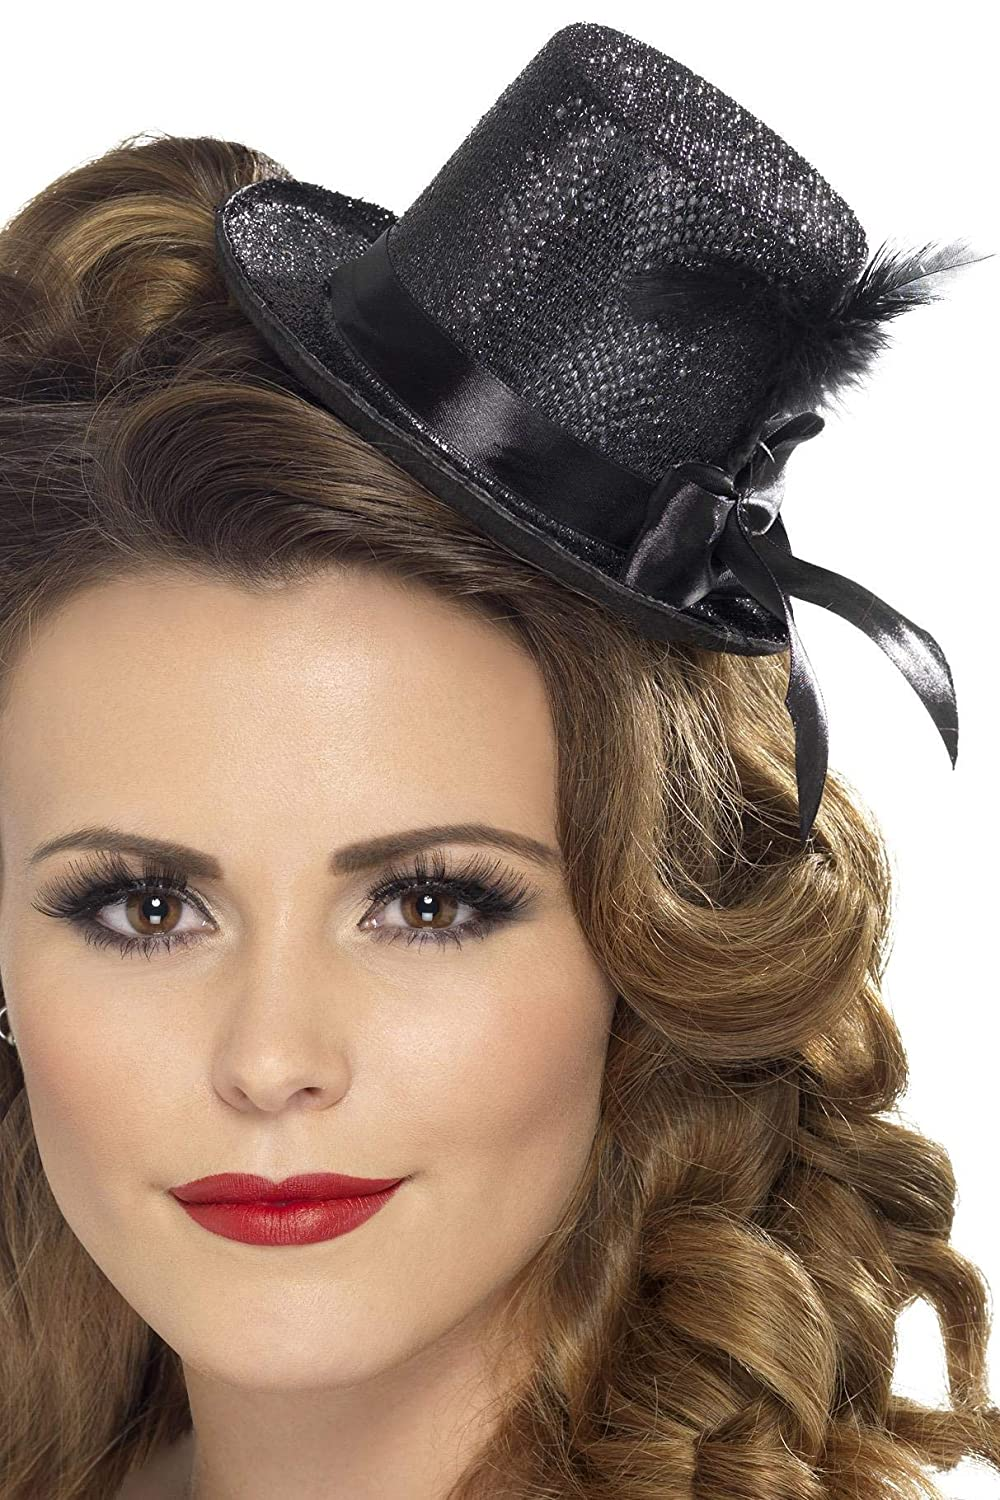 c2dfe635f Smiffys Mini Tophat, Black, with Black Ribbon and FeatherLadies